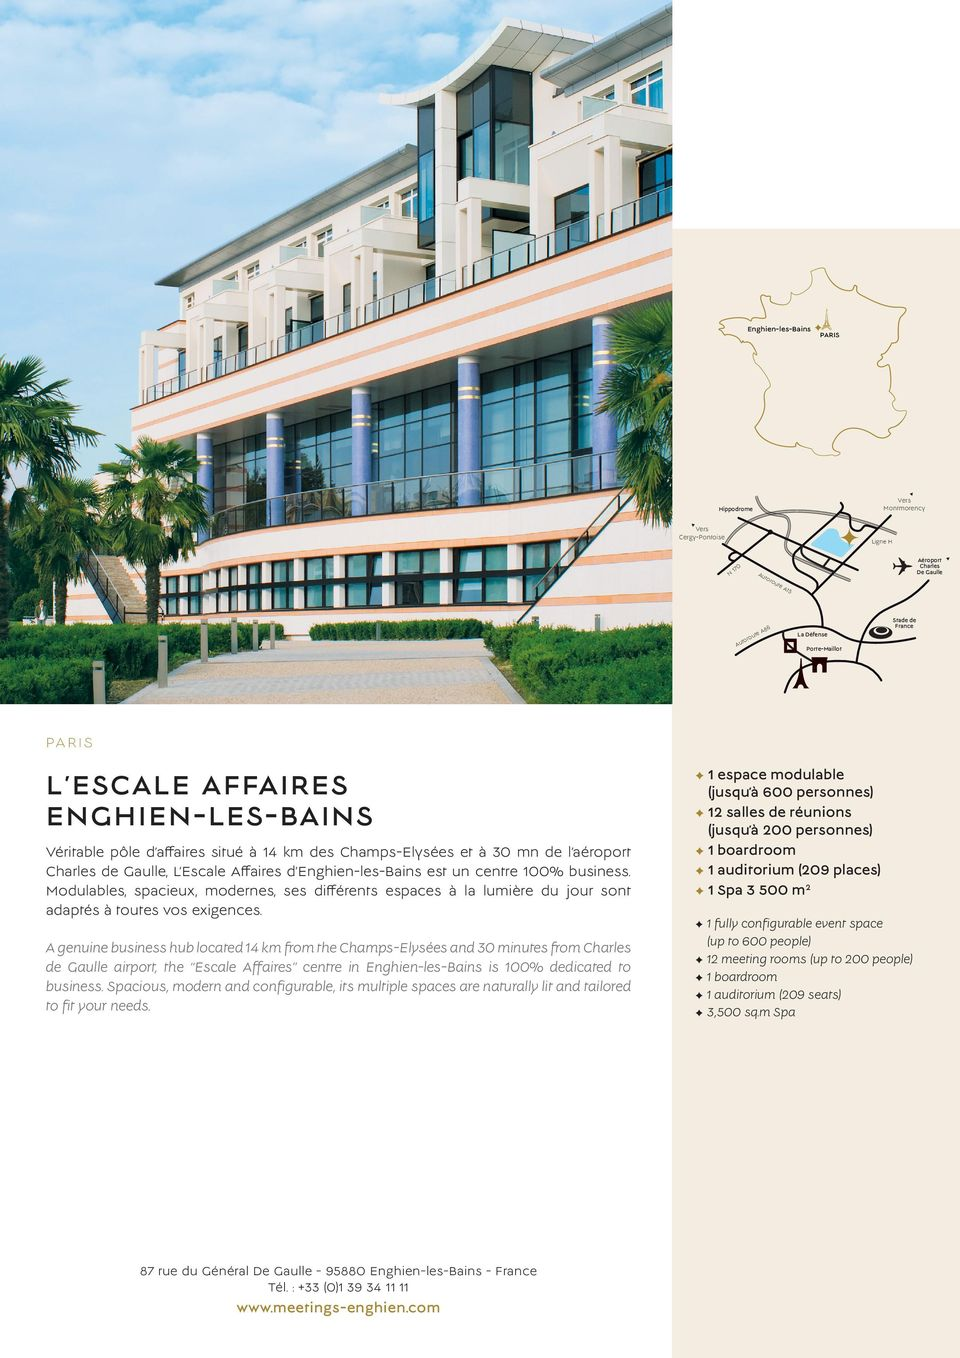 A genuine business hub located 14 km from the ChampsElysées and minutes from de Gaulle airport, the Escale Affaires centre in EnghienlesBains is 100% dedicated to business.